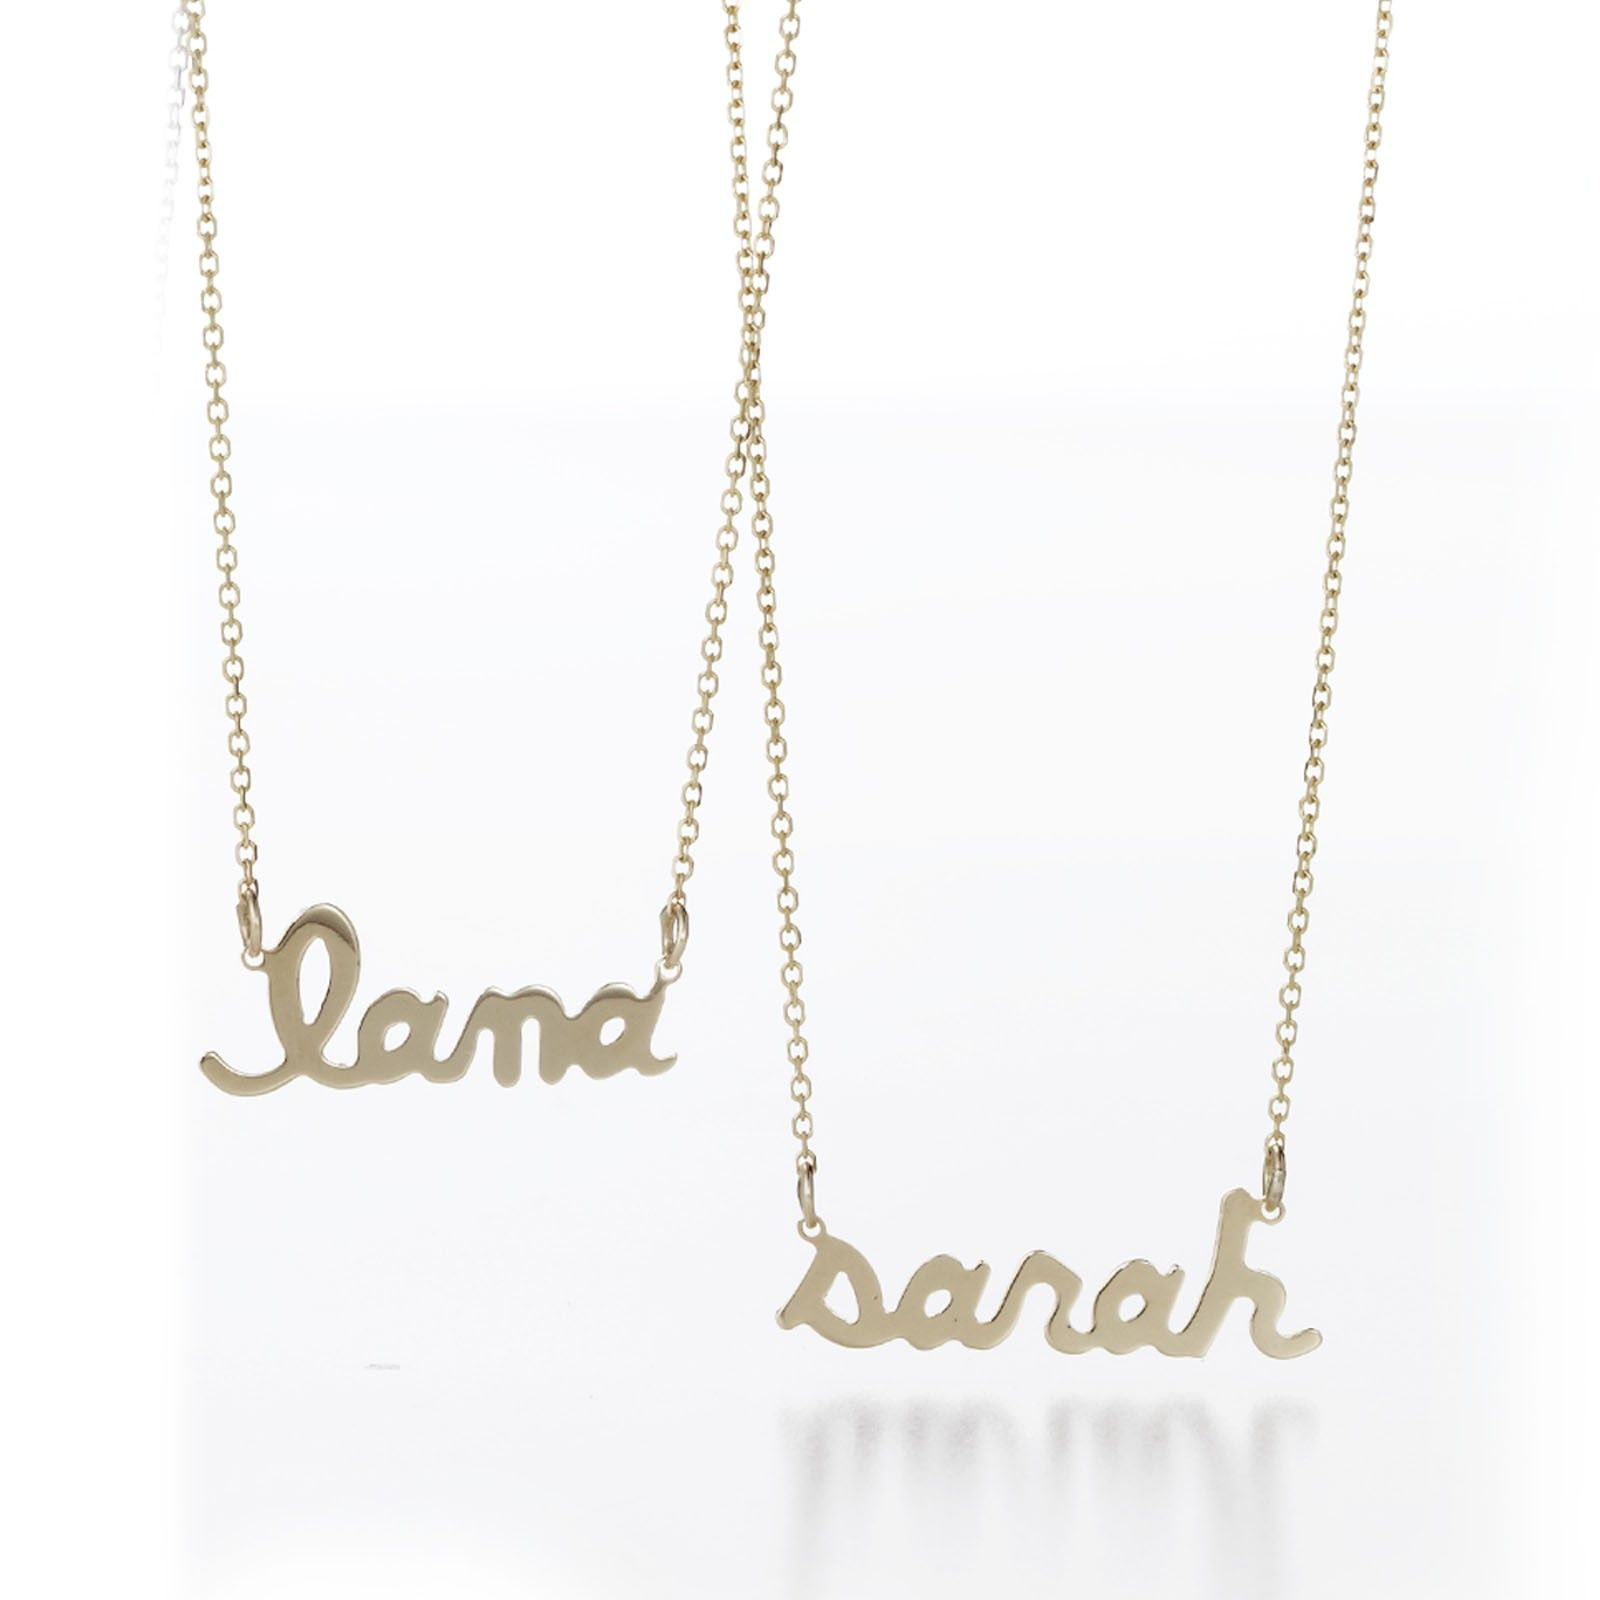 Personalized Direct Custom Made with Any Name Yellow Gold Over Sterling Silver Script Name Necklace Your Choice of Chain 16 or 18 Gift for Her